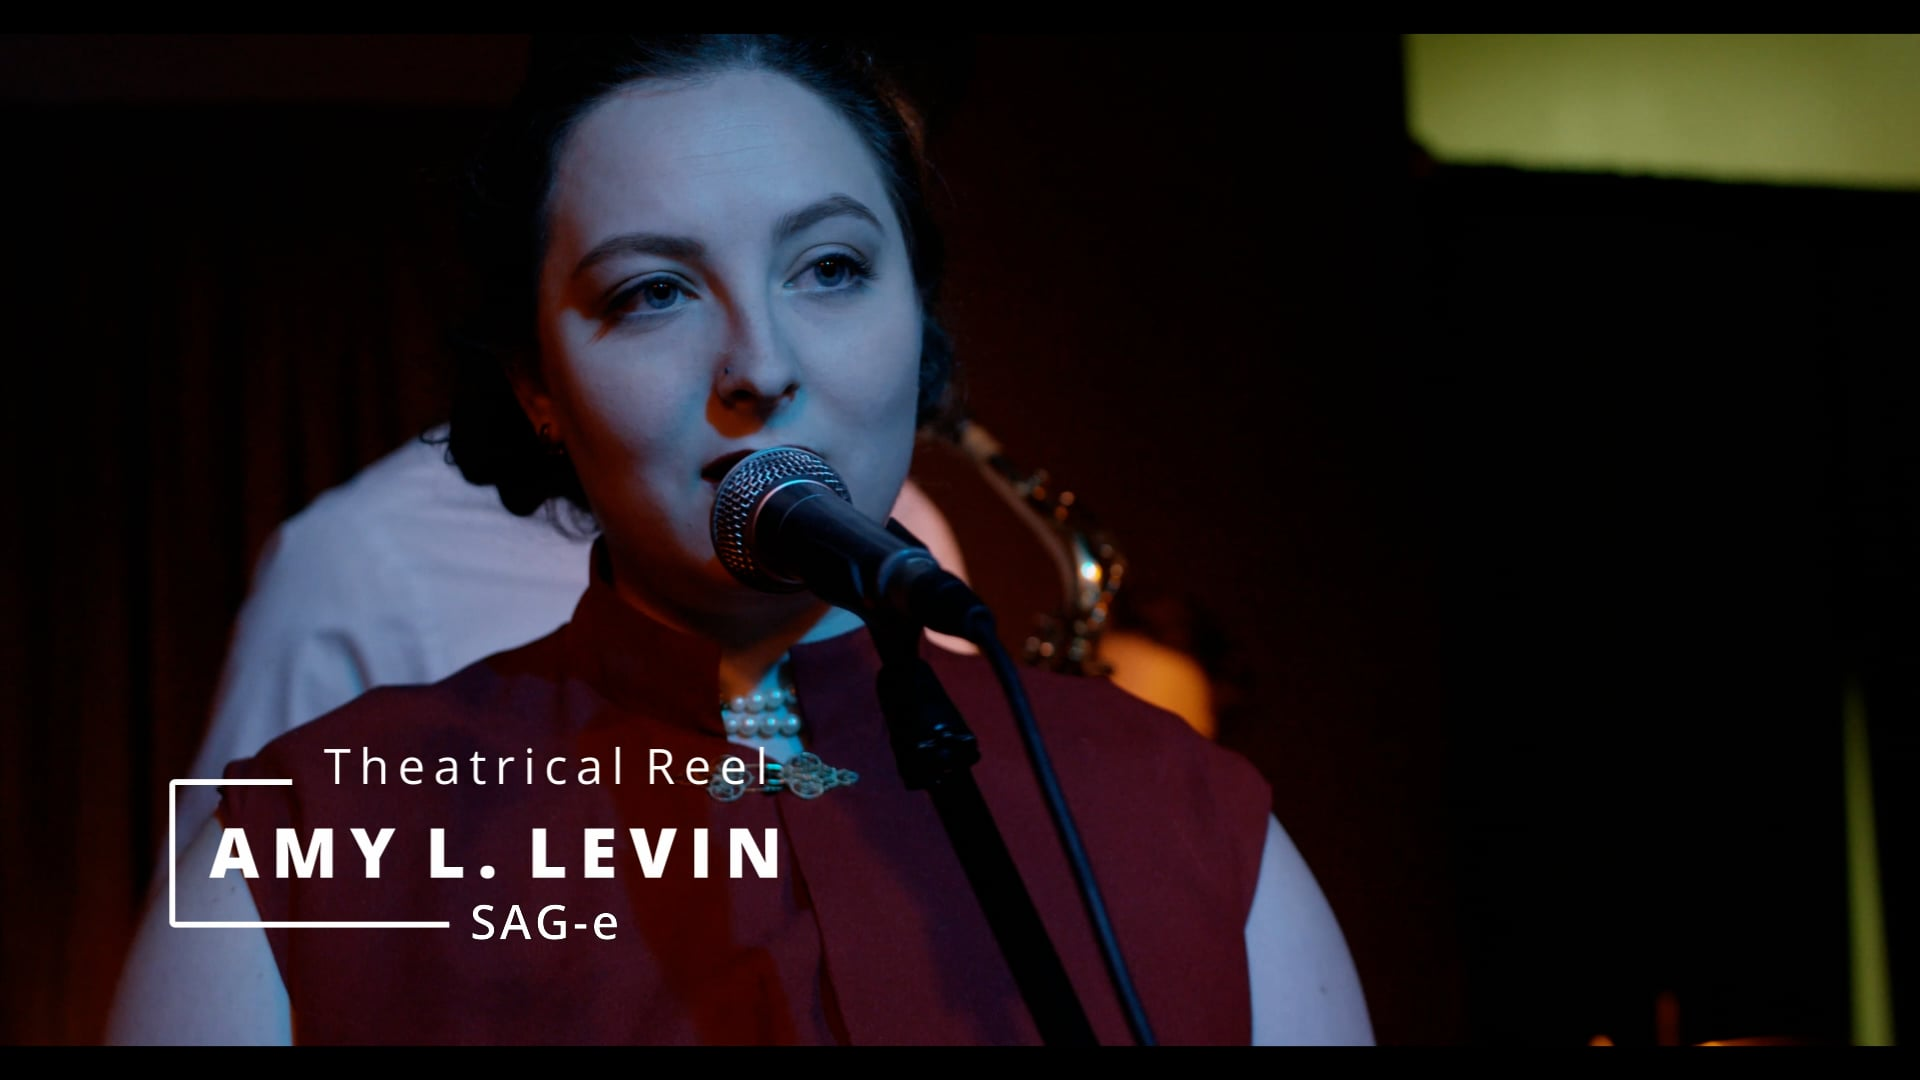 Amy L. Levin -1 Minute Theatrical Reel